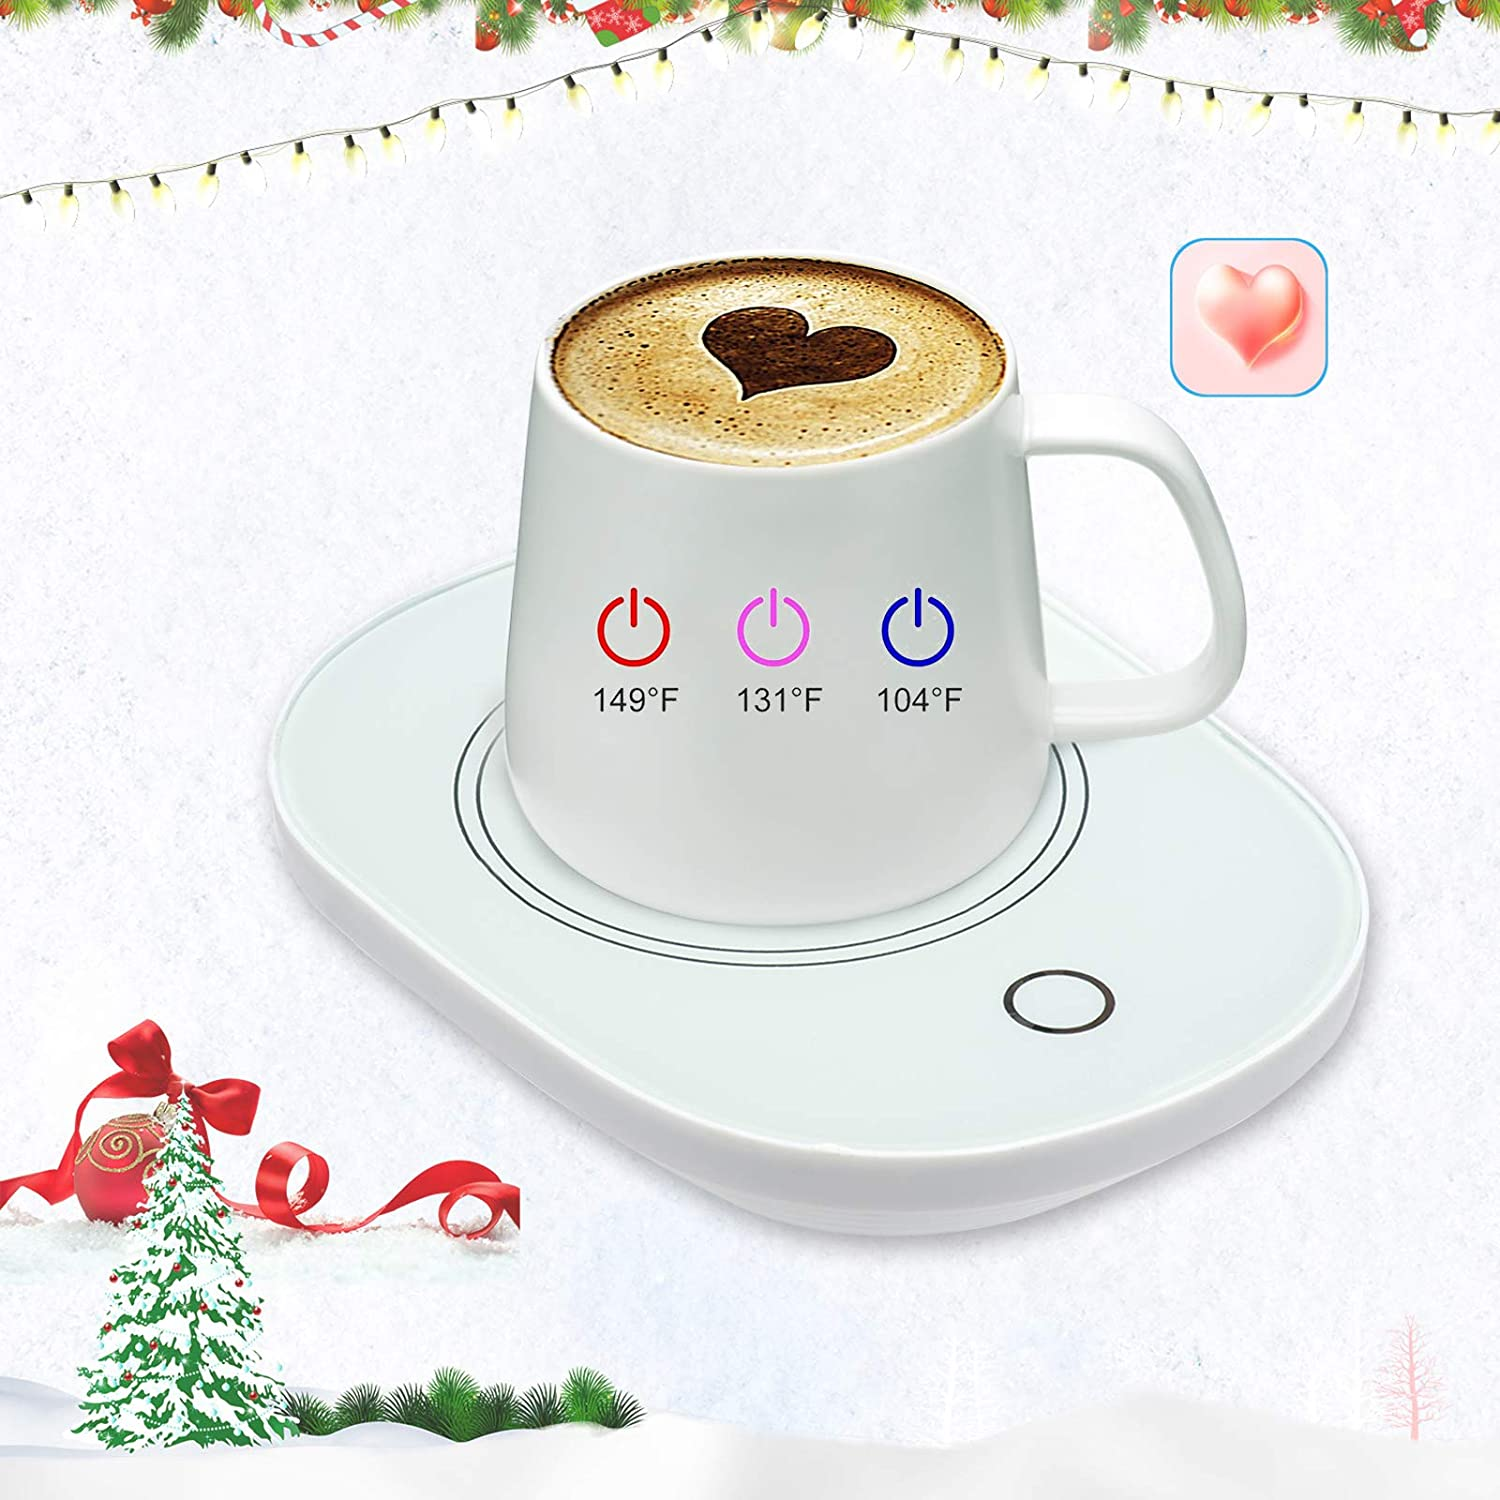 Plug-3 Warm Levels Coffee Cup Warmer for Desk with Auto Shut Off,Coffee Mug Warmer for Desk Office Home